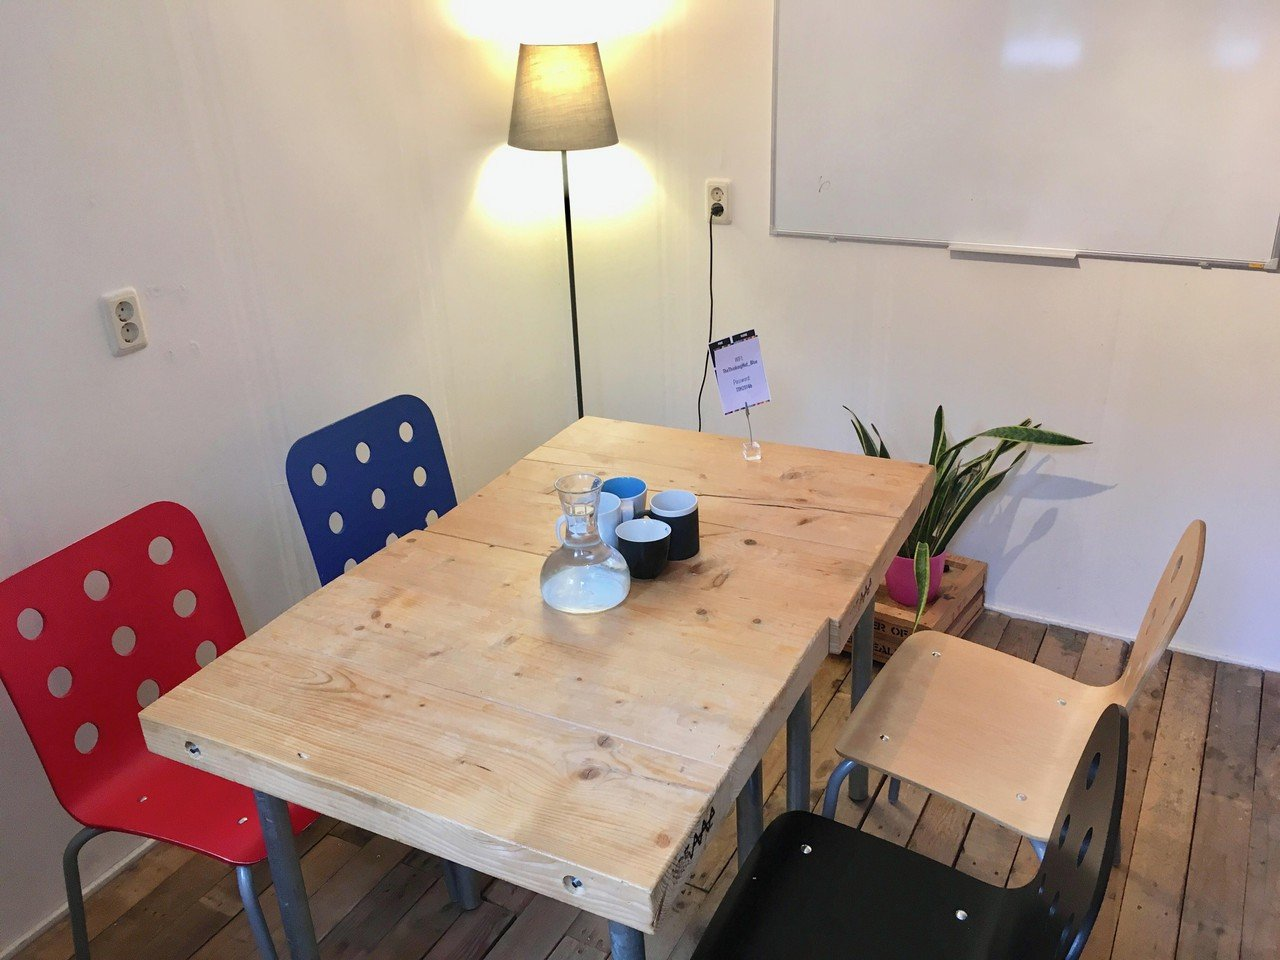 Amsterdam conference rooms Coworking Space The Thinking Hut - Coaching Room image 1